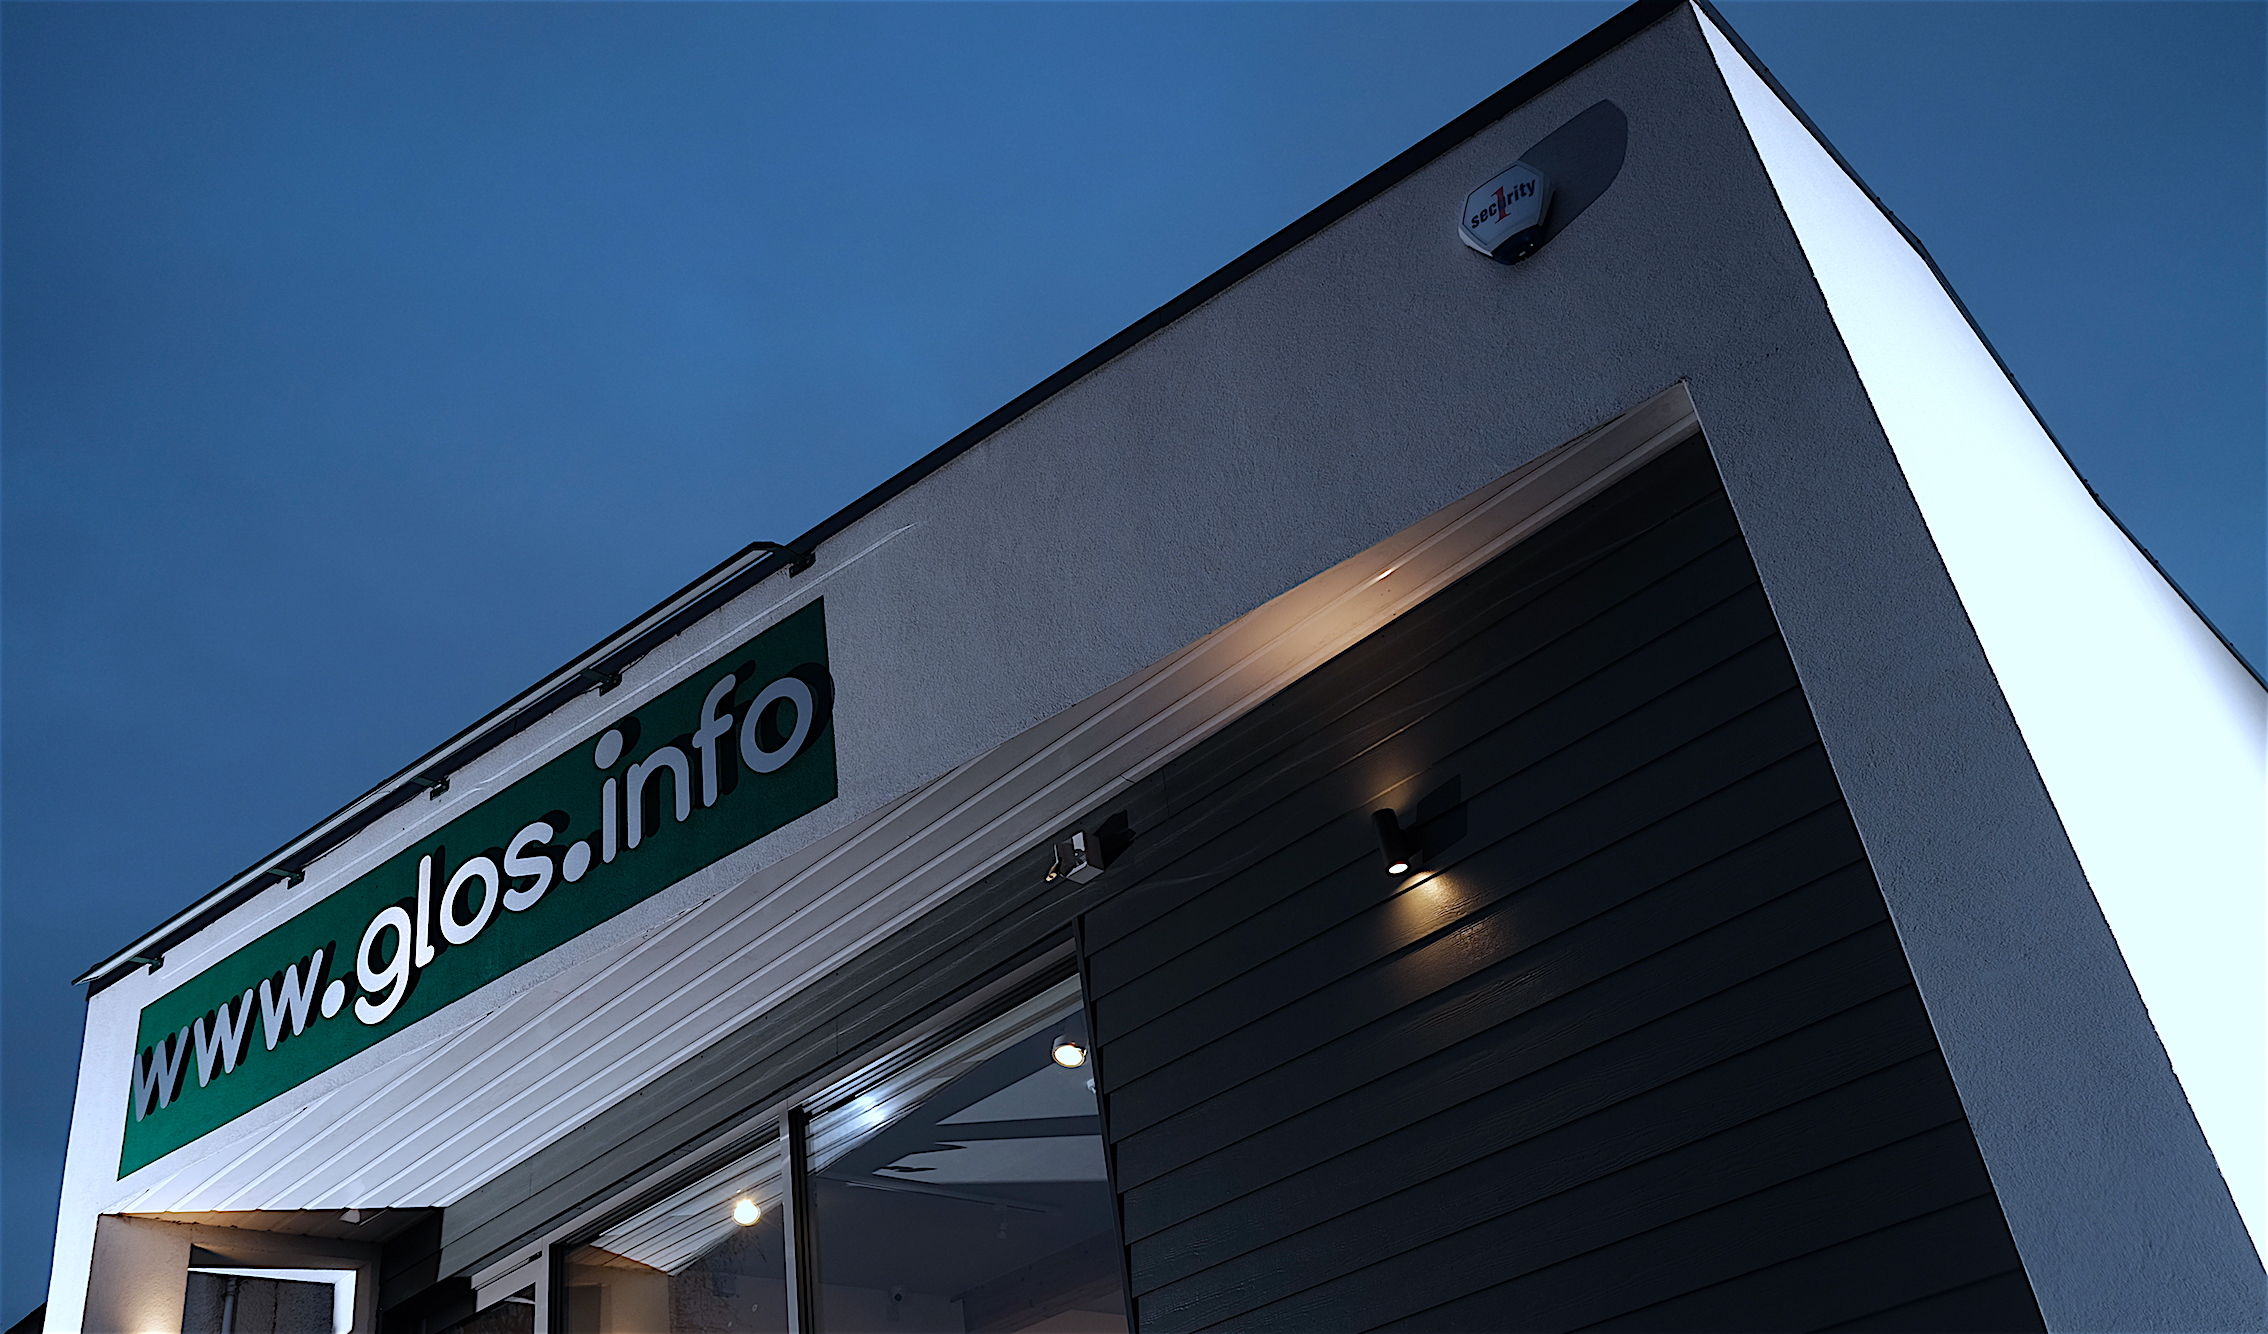 Glos Info – completed external facade